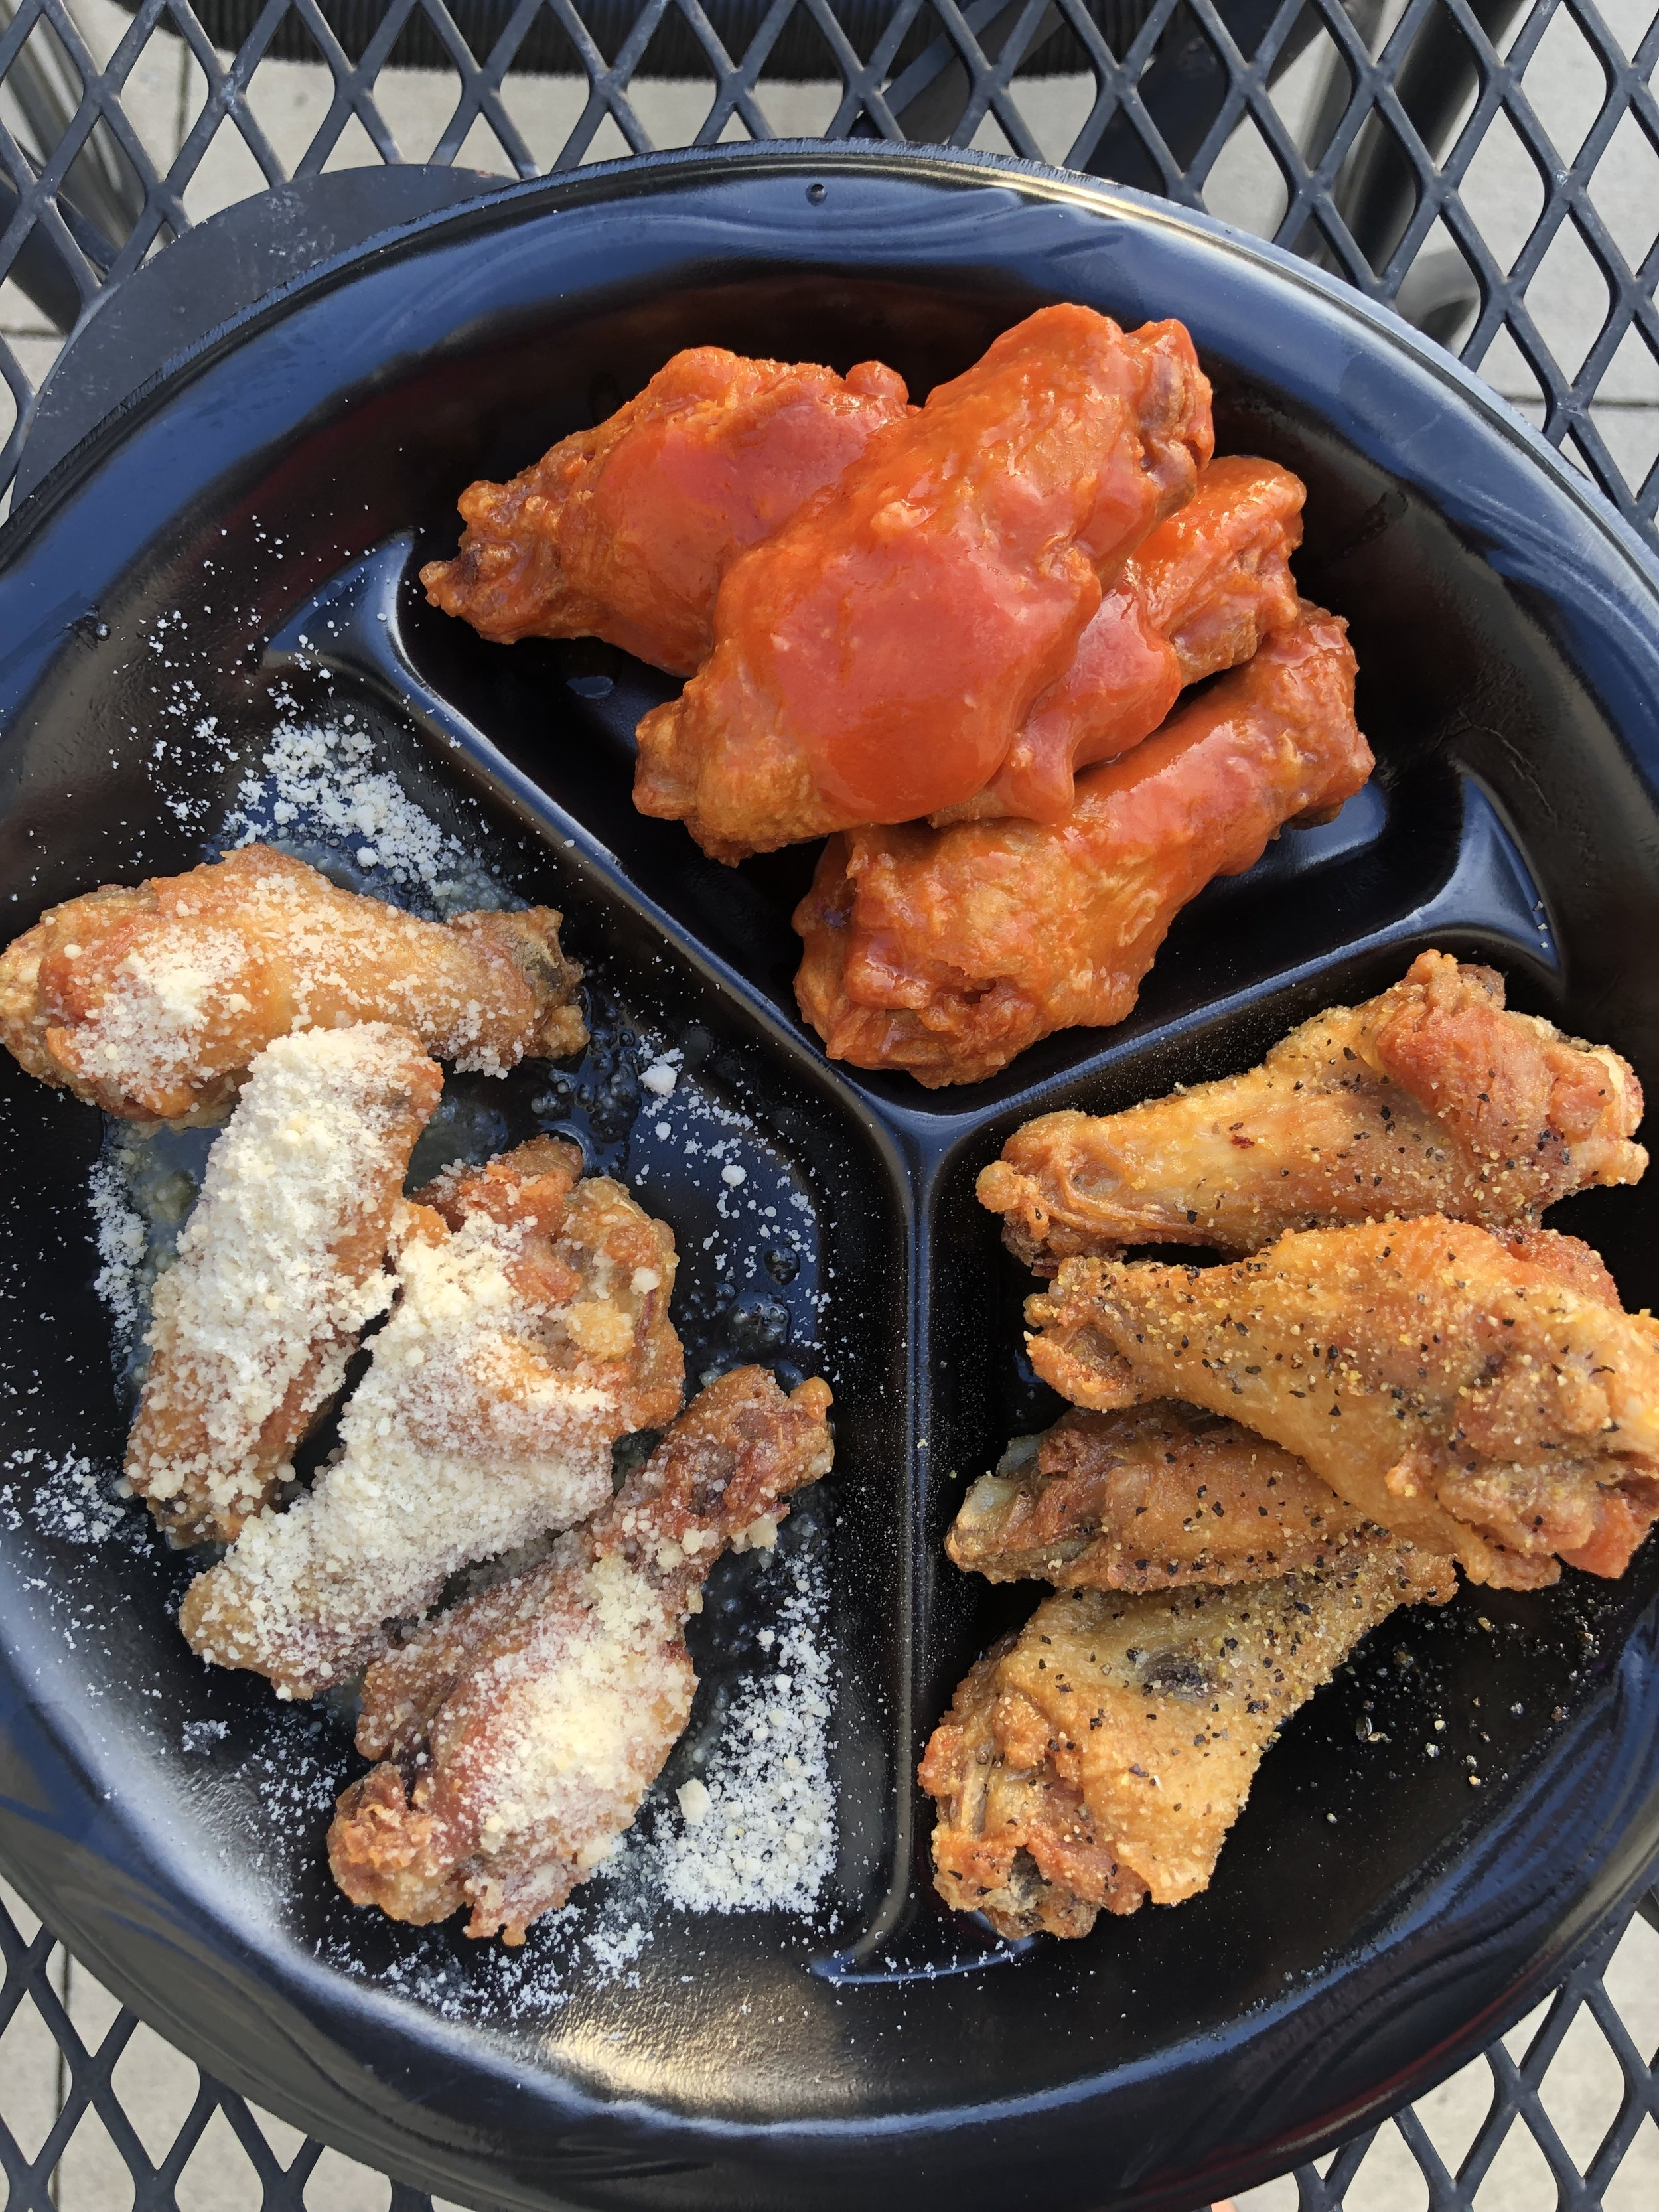 chicken Wings - You can get your chicken as wings or strips, and one of the coolest things about Flip-a-Lo's is that you can mix and match your sauces in every combination. Want 3 Buffalo Hot, 2 Teriyaki, 4 Garlic Parmesan, and 1 Honey BBQ? Want to mix Buffalo mild and BBQ on a SINGLE wing? That might be kind of a dick move, but they would have you covered. Want to dip your wings in bleu cheese or ranch? Those are all homemade. PRAISE. Your wings come with two breadsticks, carrots & celery, or you can sub fries or another side for a small upcharge.